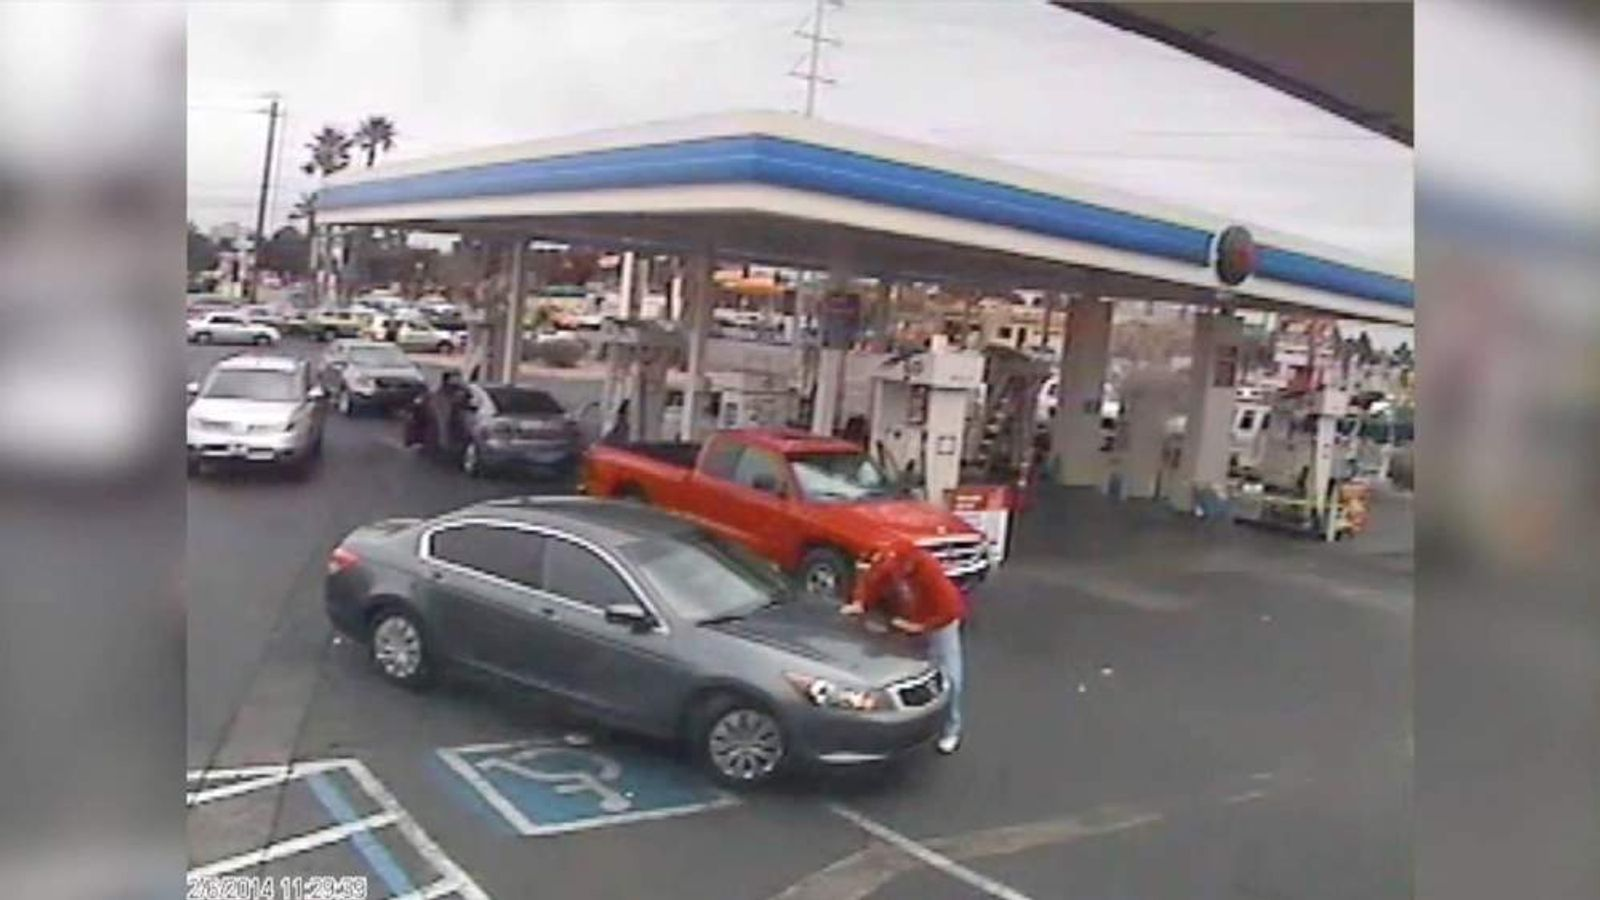 A man has been hit by a car at a Las Vegas petrol station